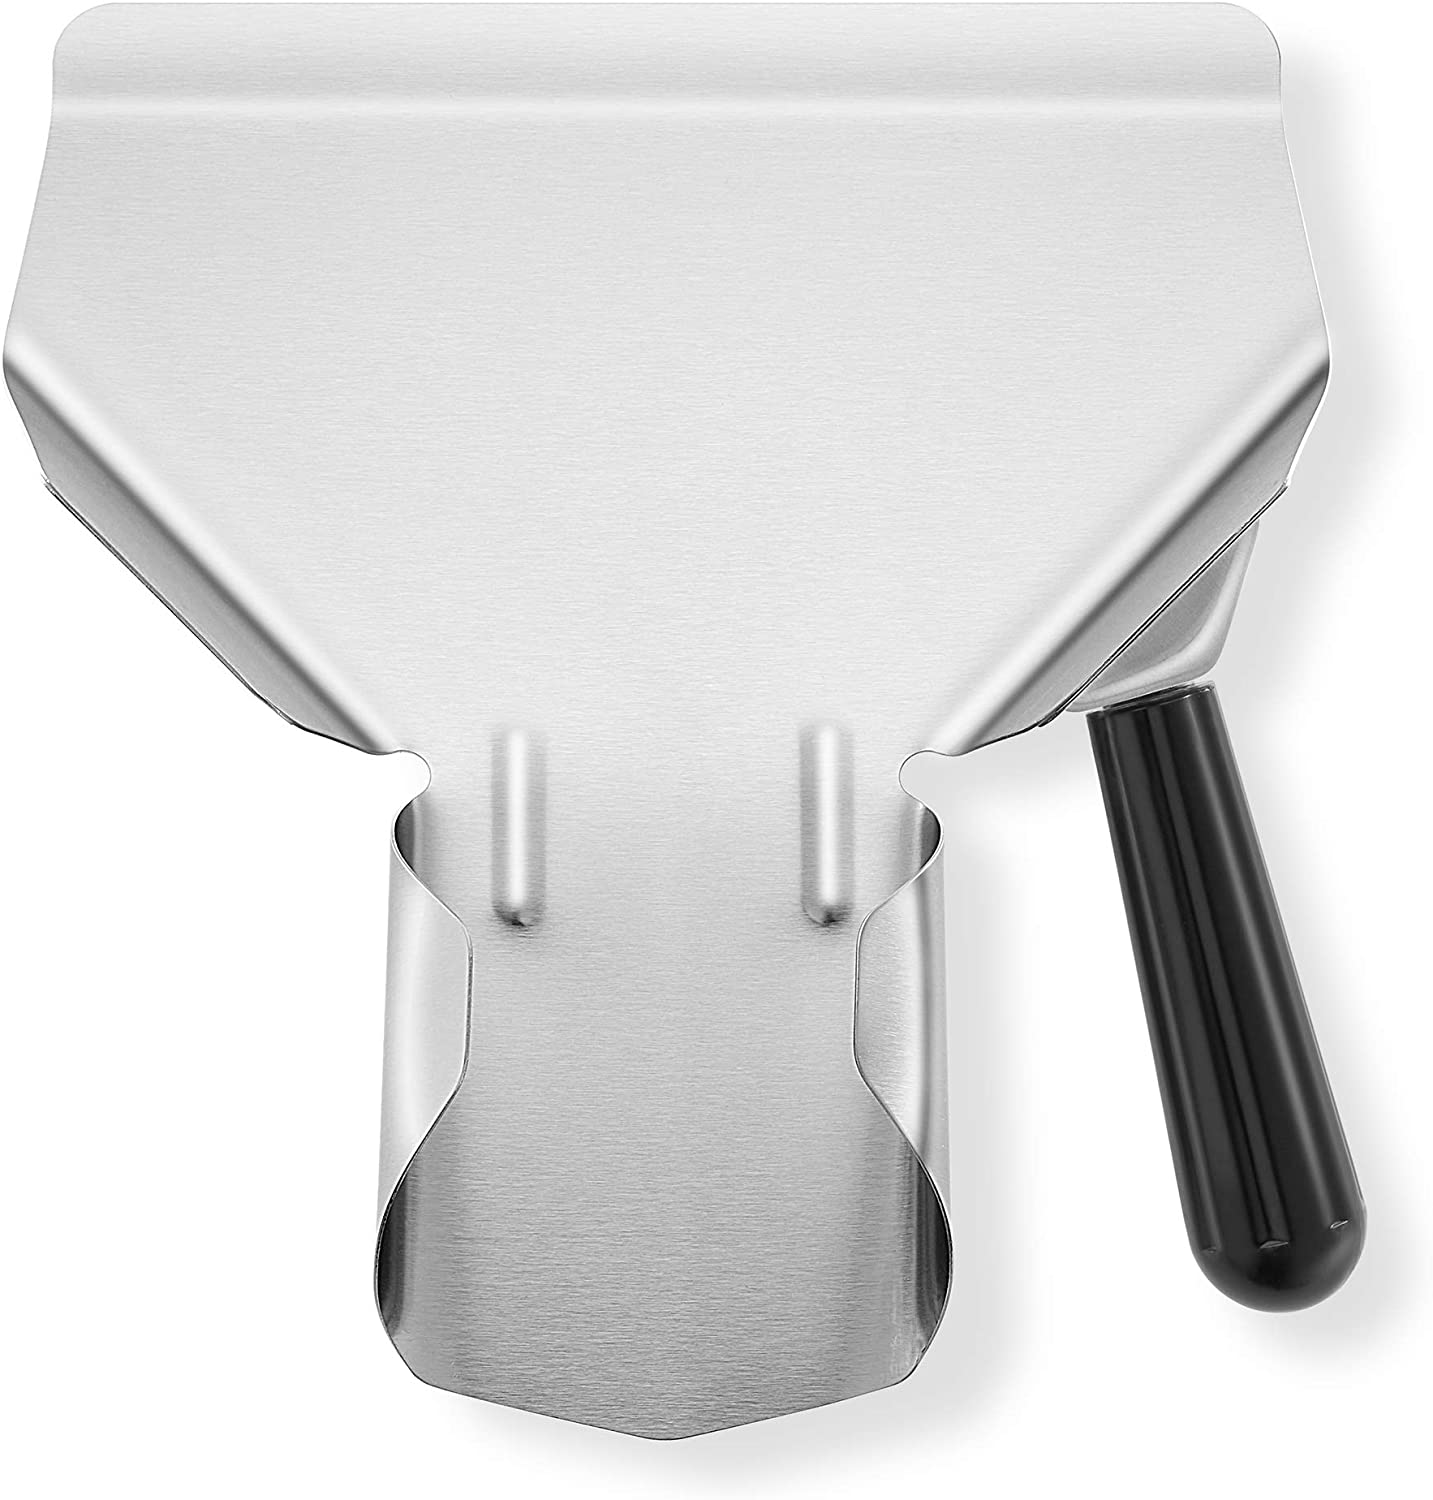 Olde Midway Stainless Steel High quality French Fry Austin Mall Right with Scoop - Handle